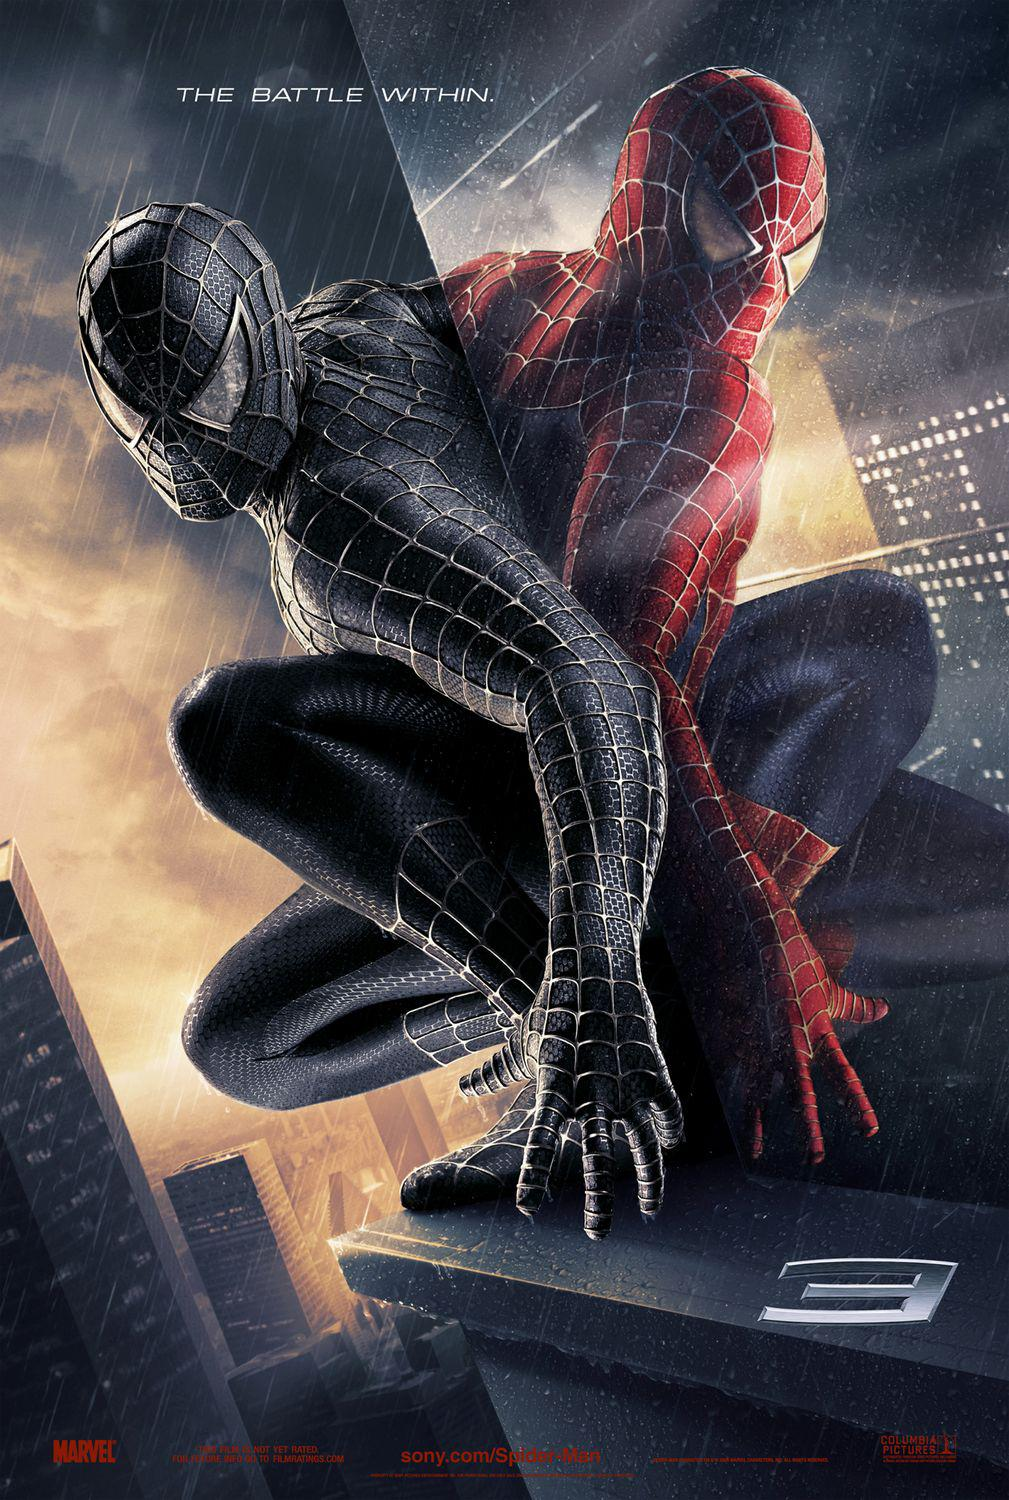 Spiderman 3 - Spider Man three - poster